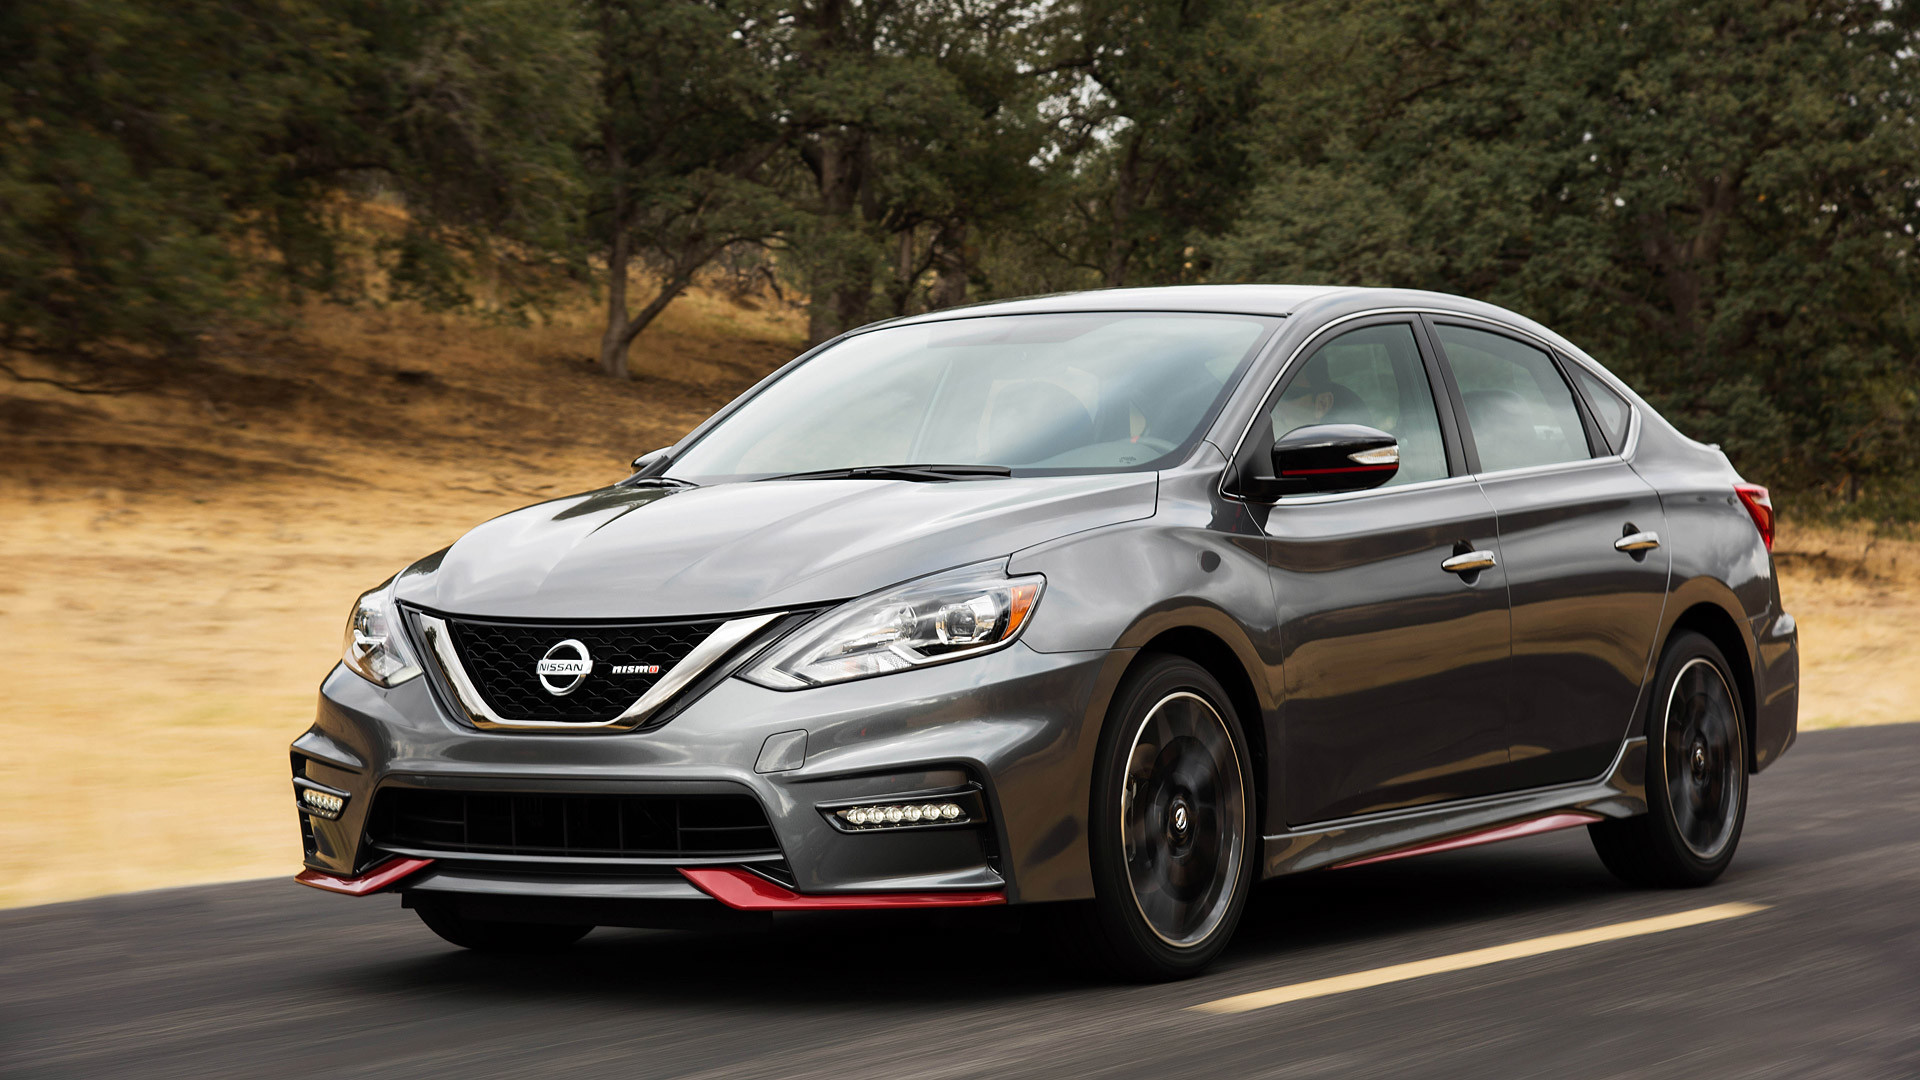 Res: 1920x1080, 2017 Nissan Sentra Nismo picture.